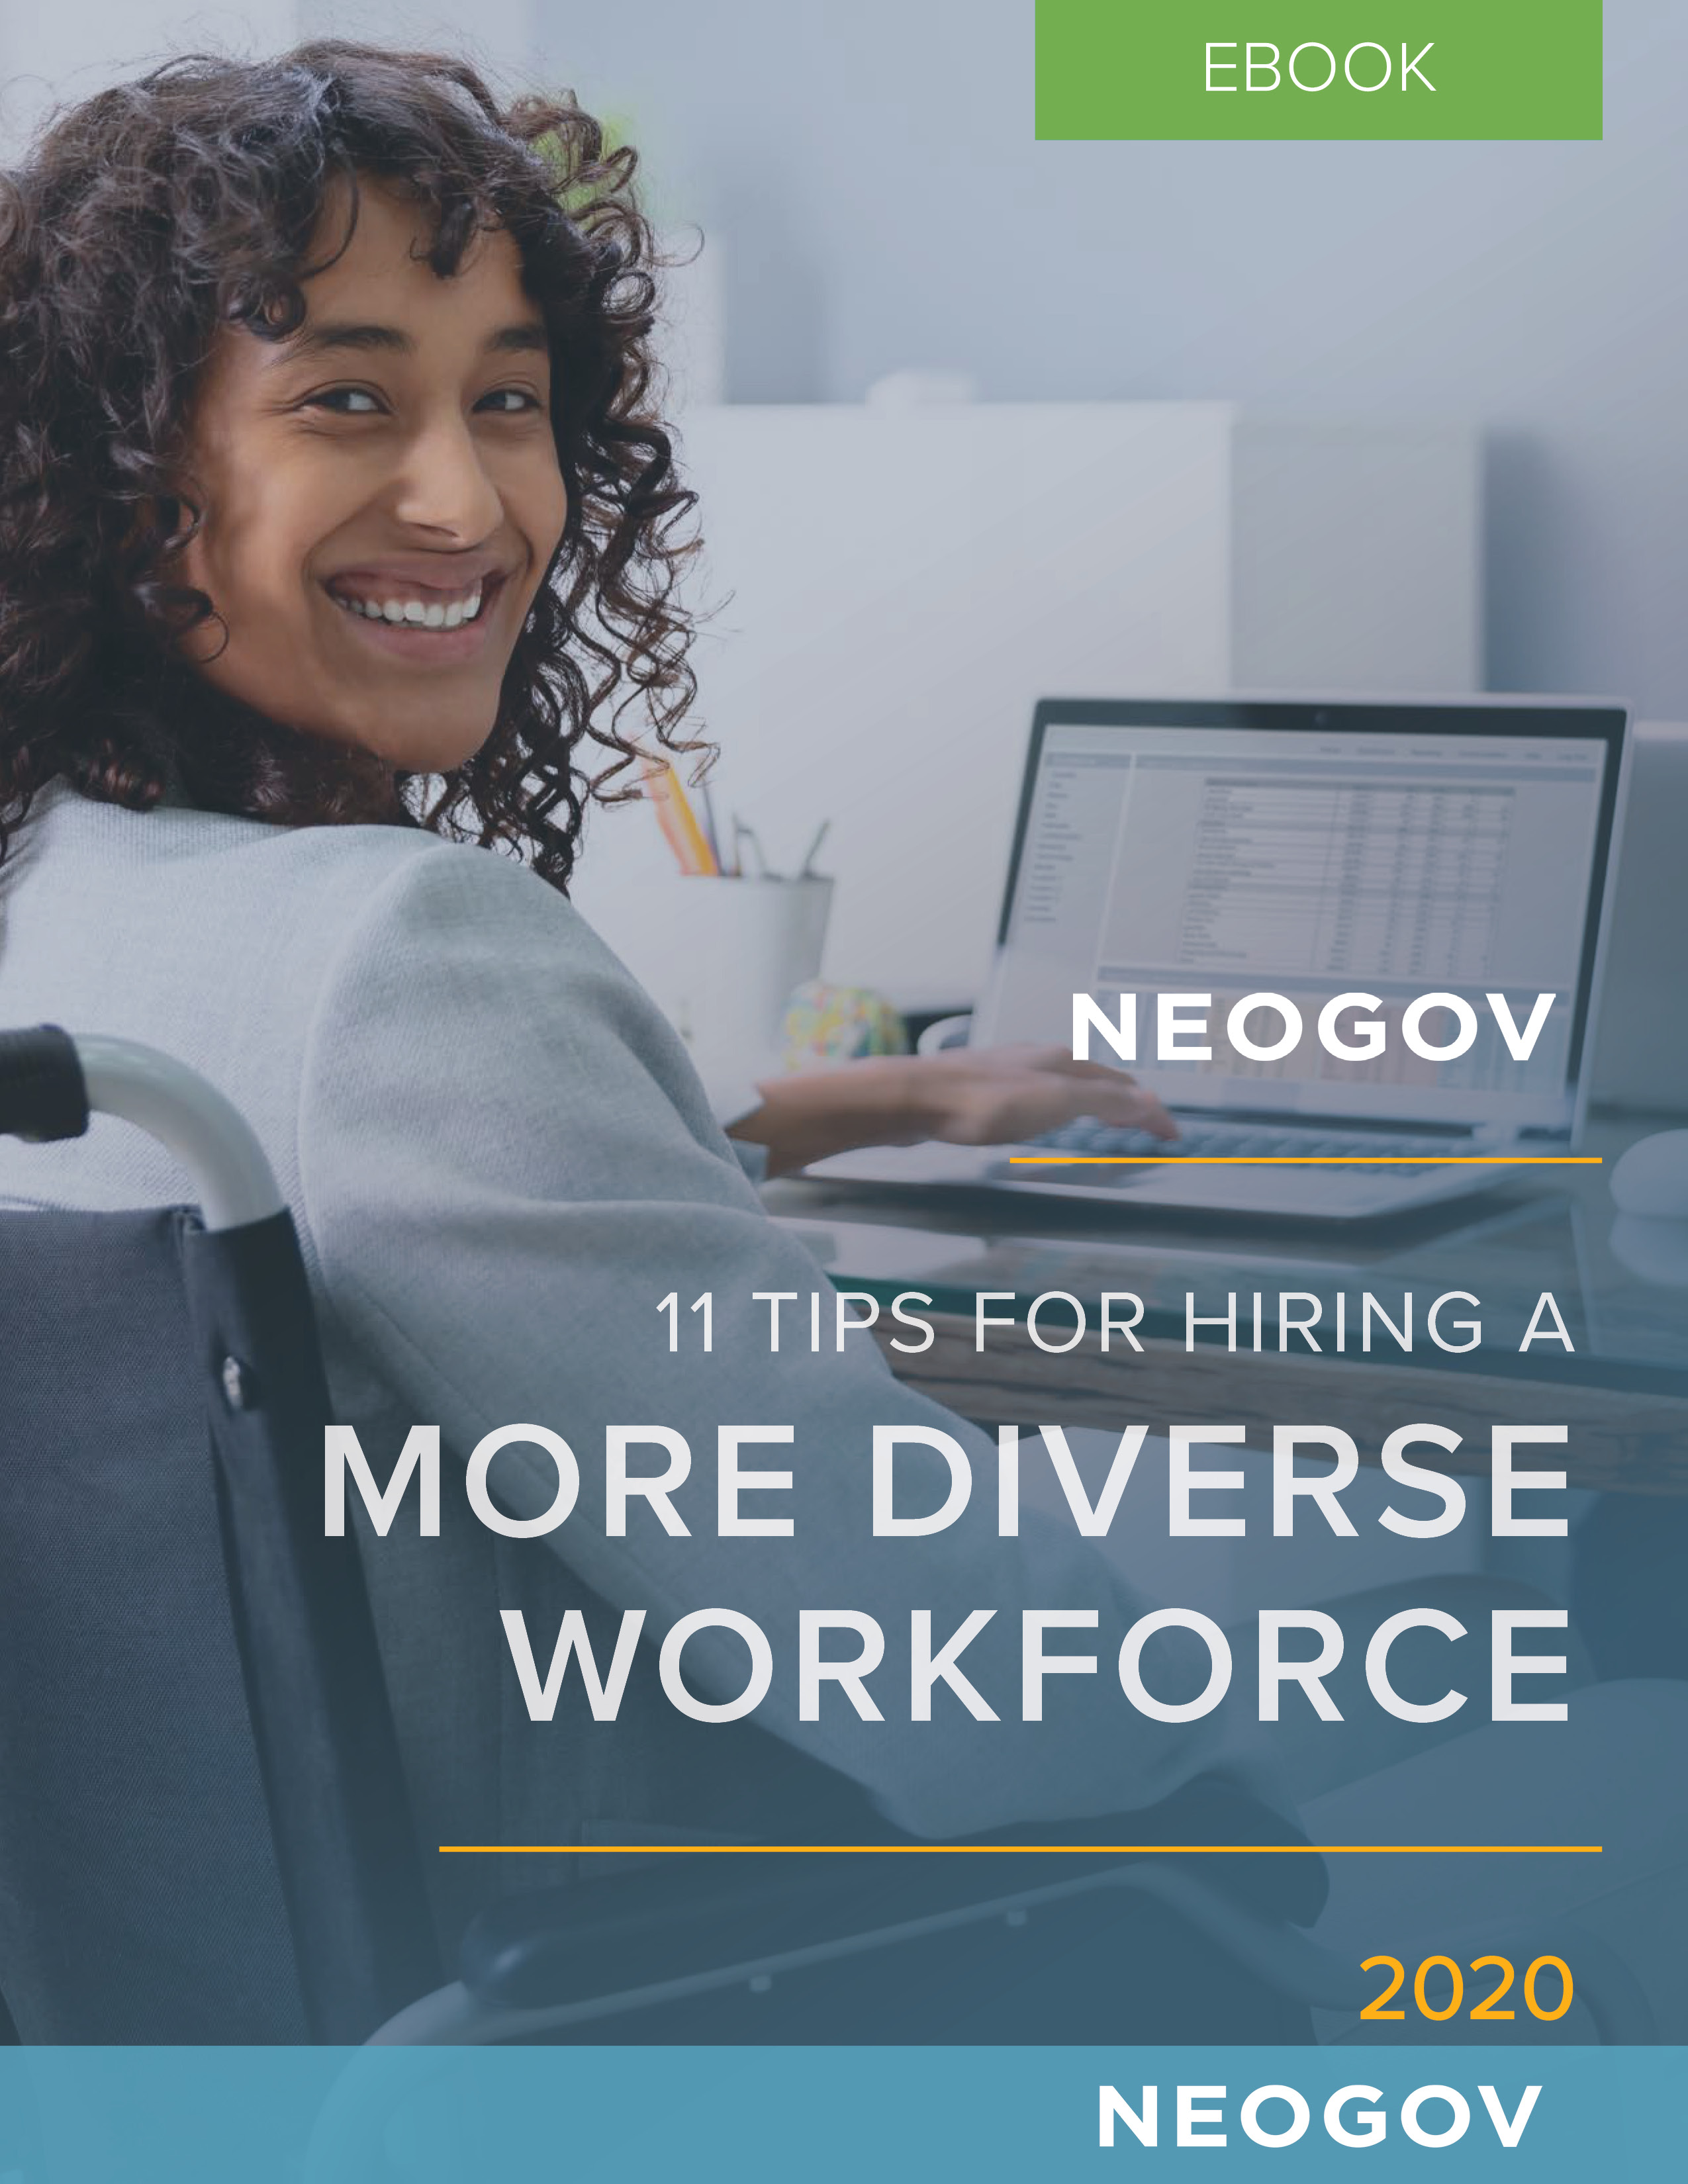 11 Tips for a More Diverse Workforce